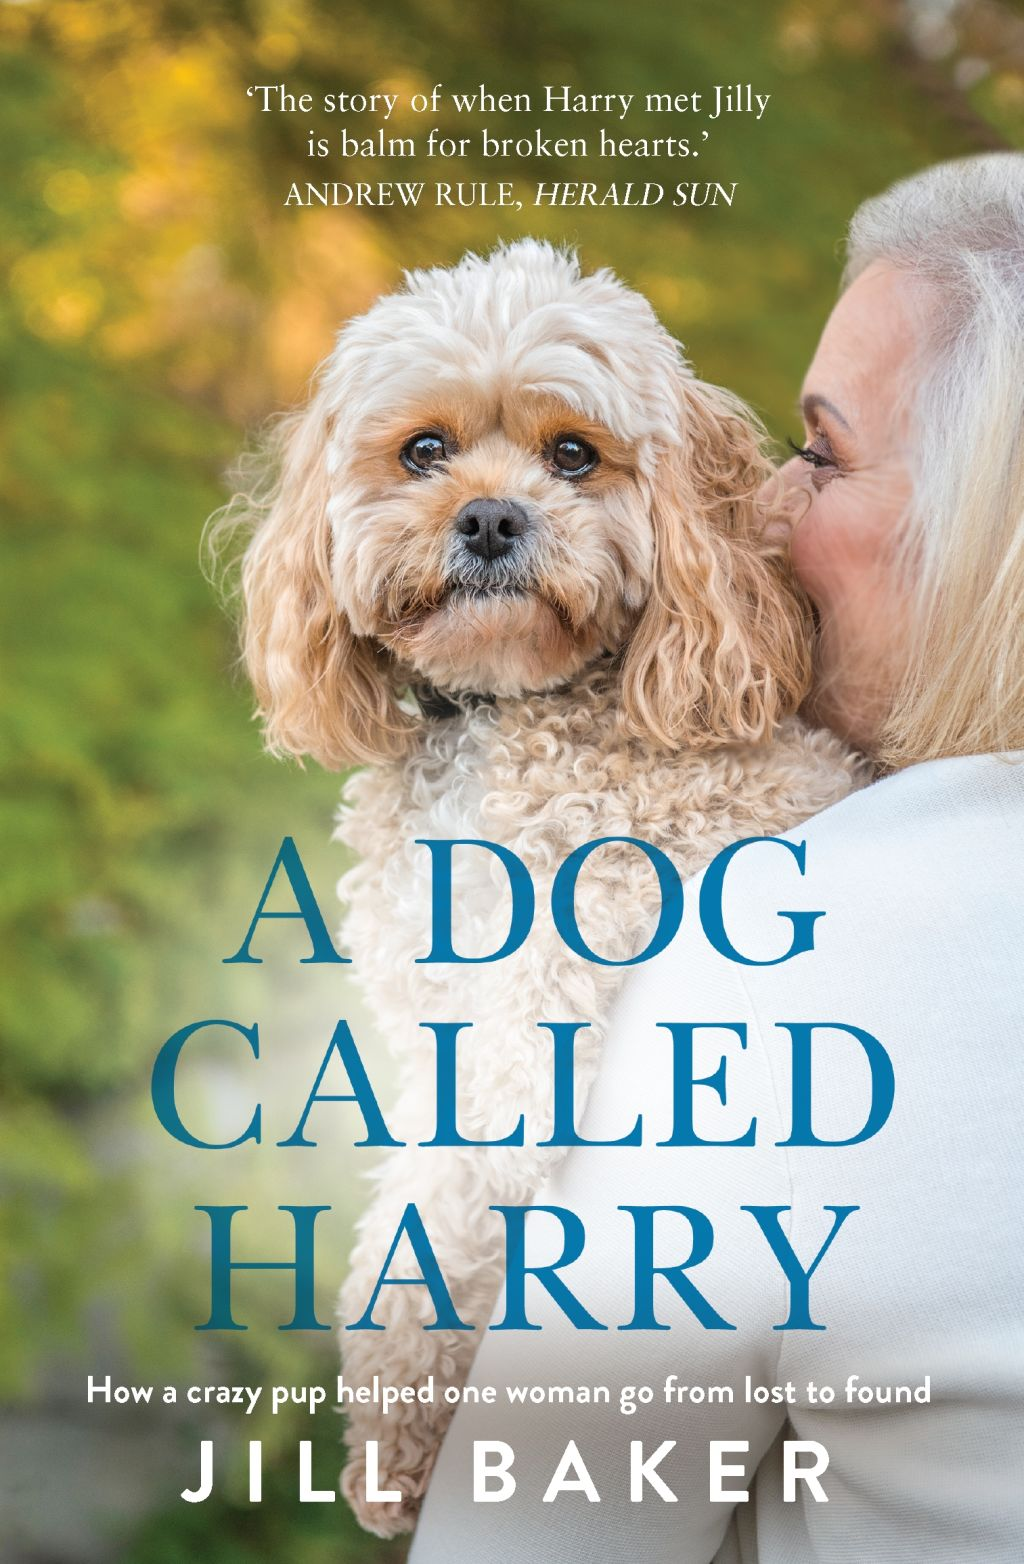 A Dog Called Harry by Jill Baker.